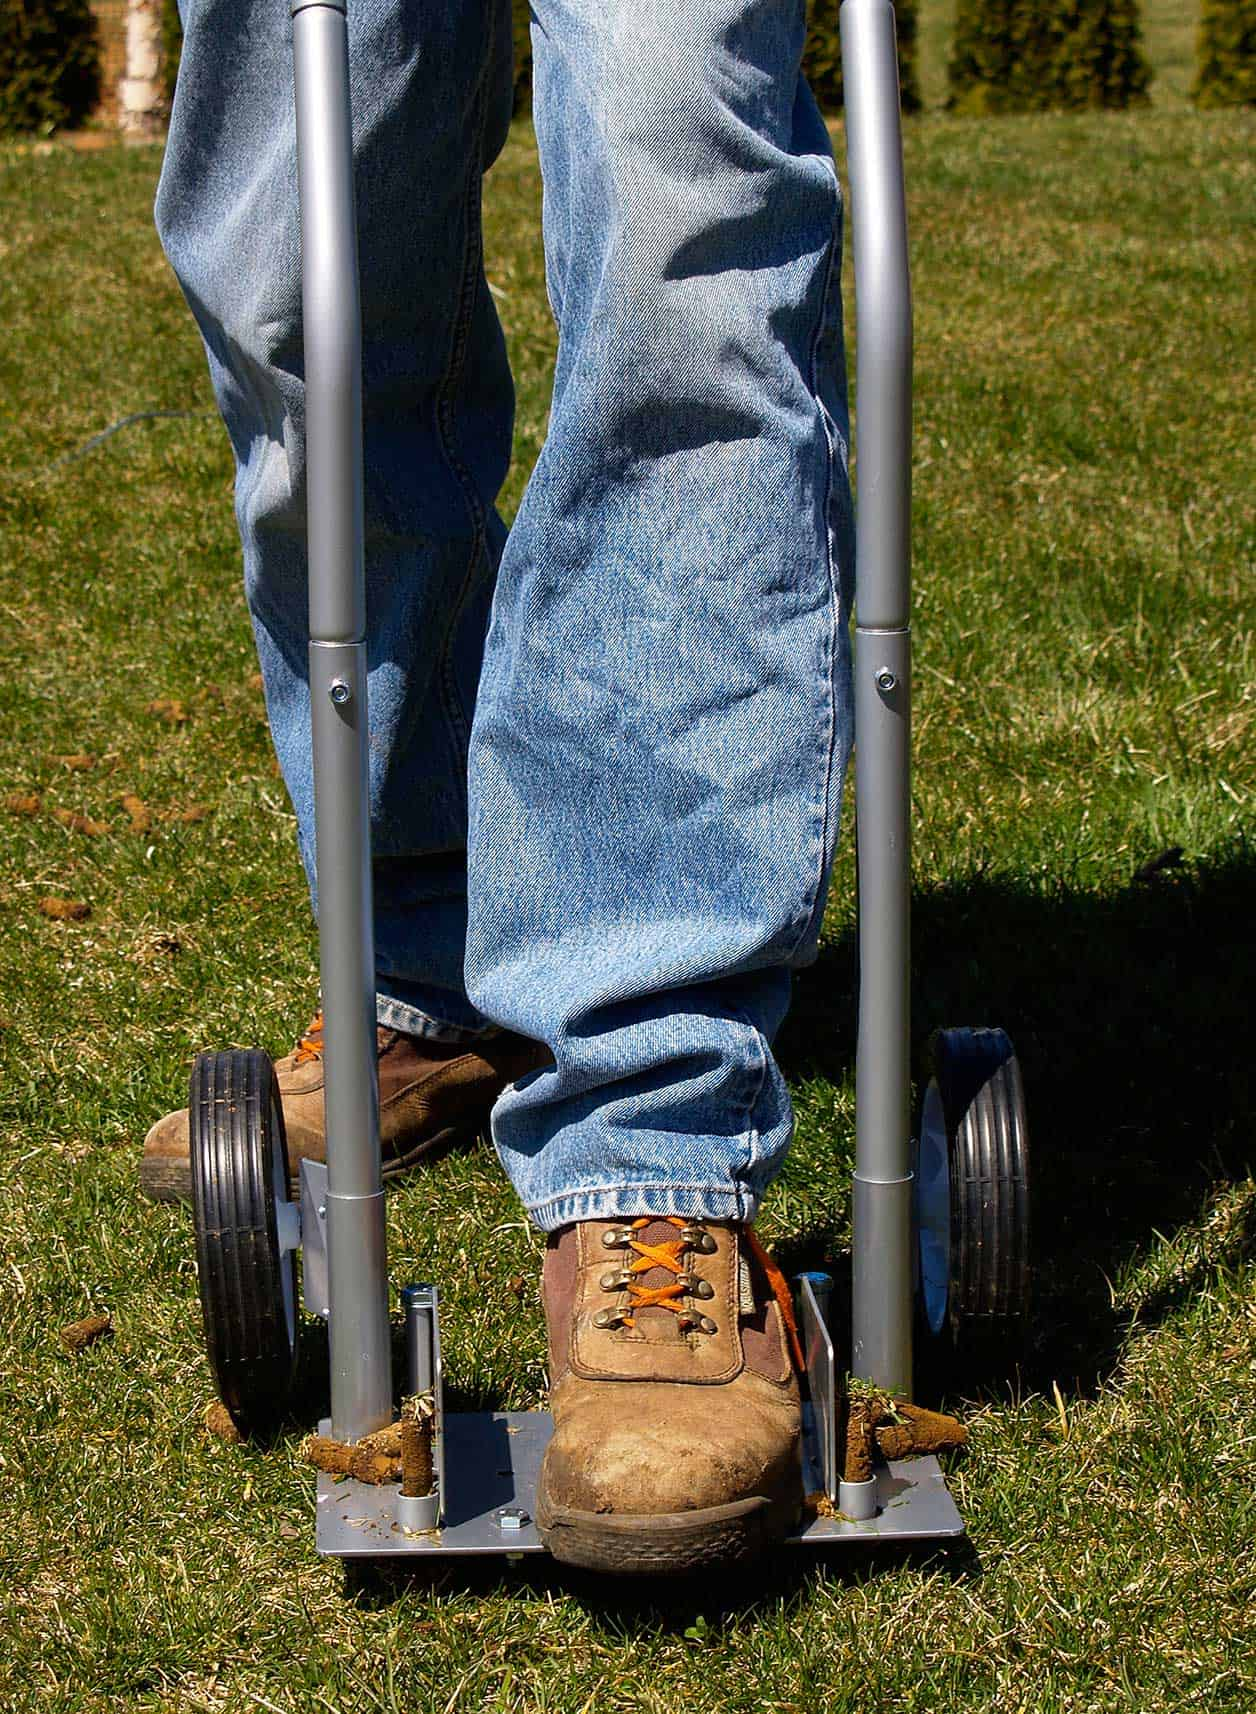 Grass Aerator Step N Tilt Core Lawn Aerator Review